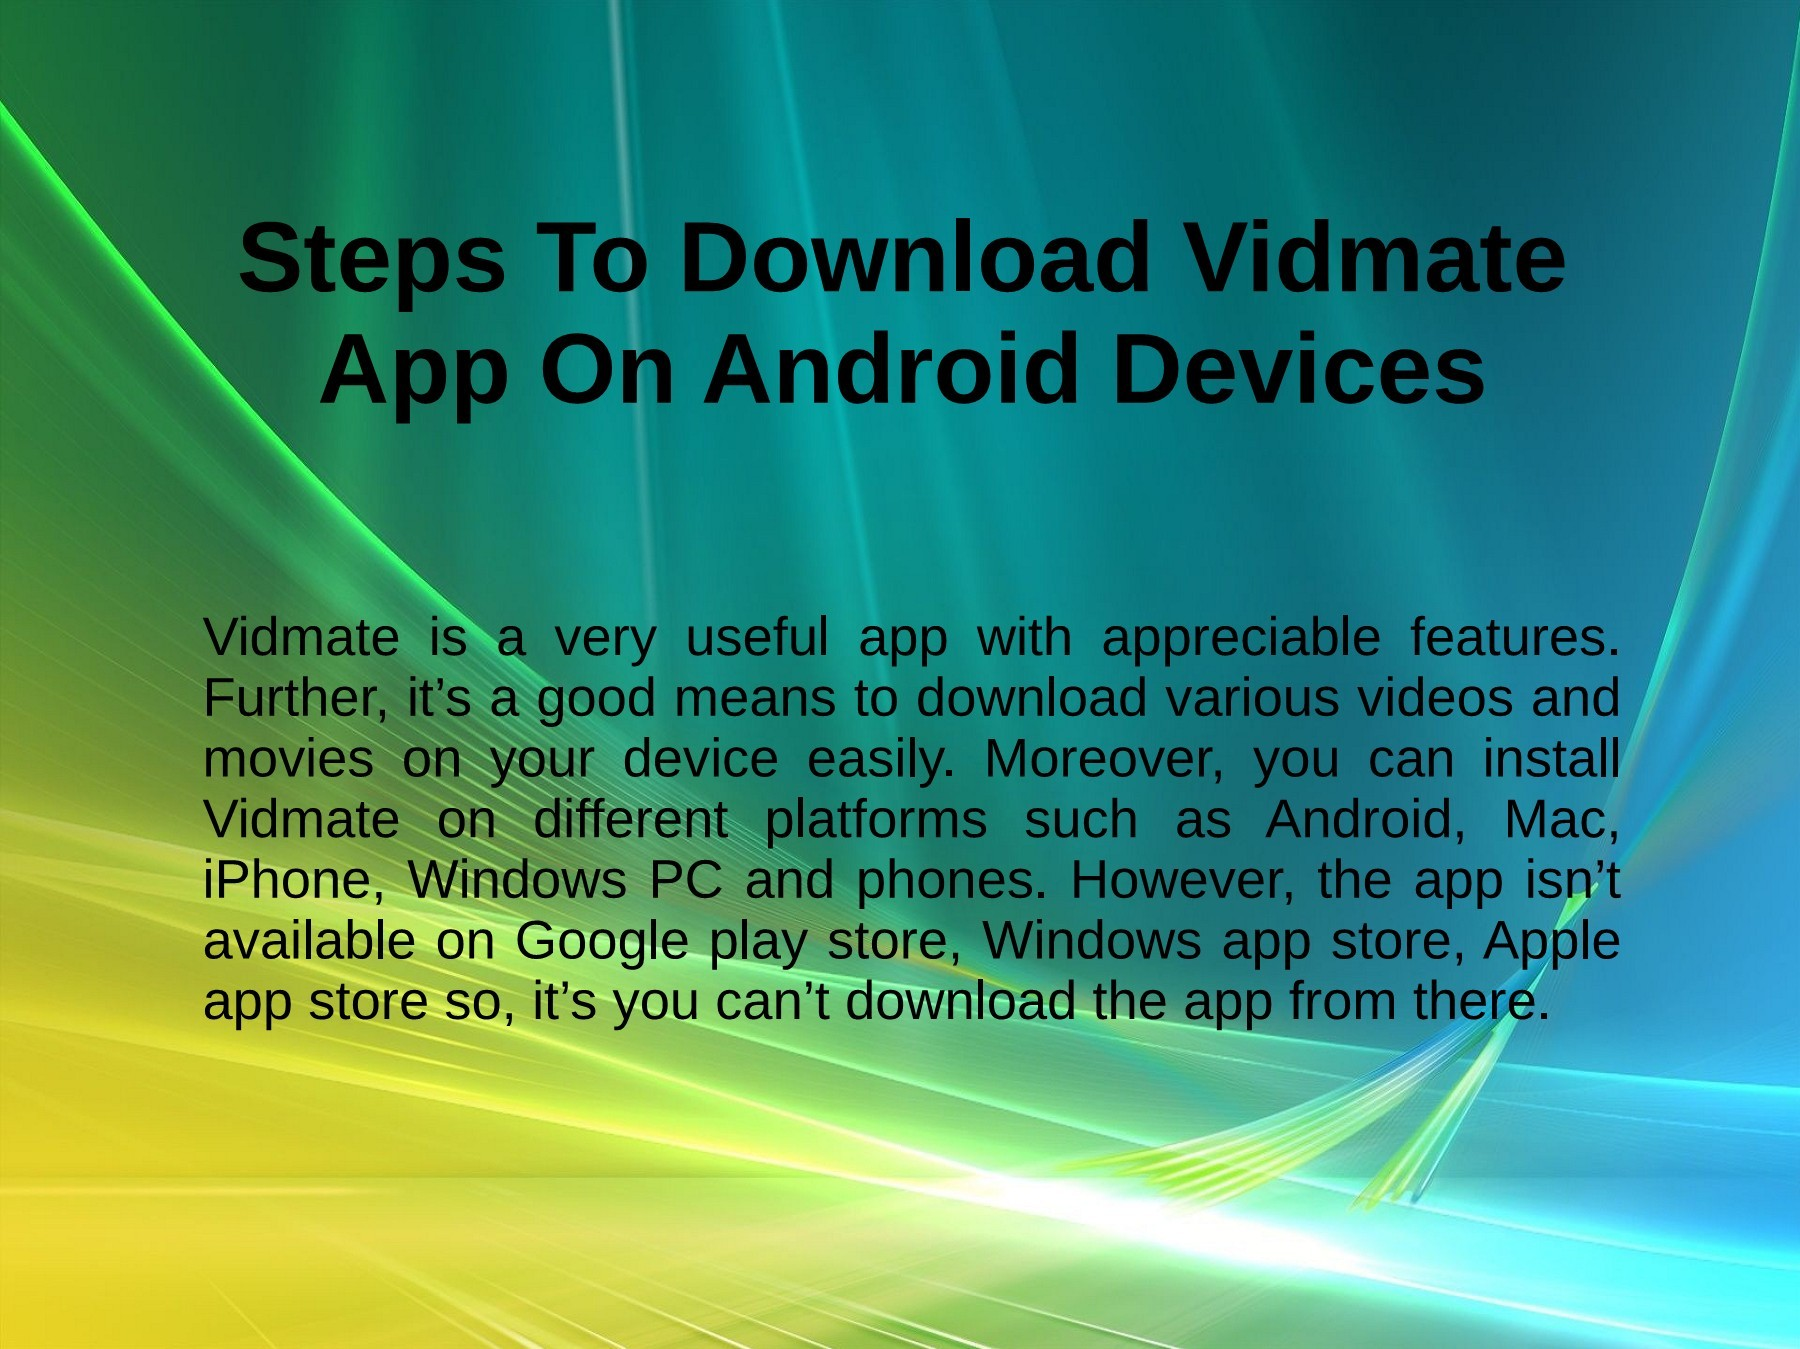 Download Vidmate Apk for Android, MAC,iPhone,Windows PC